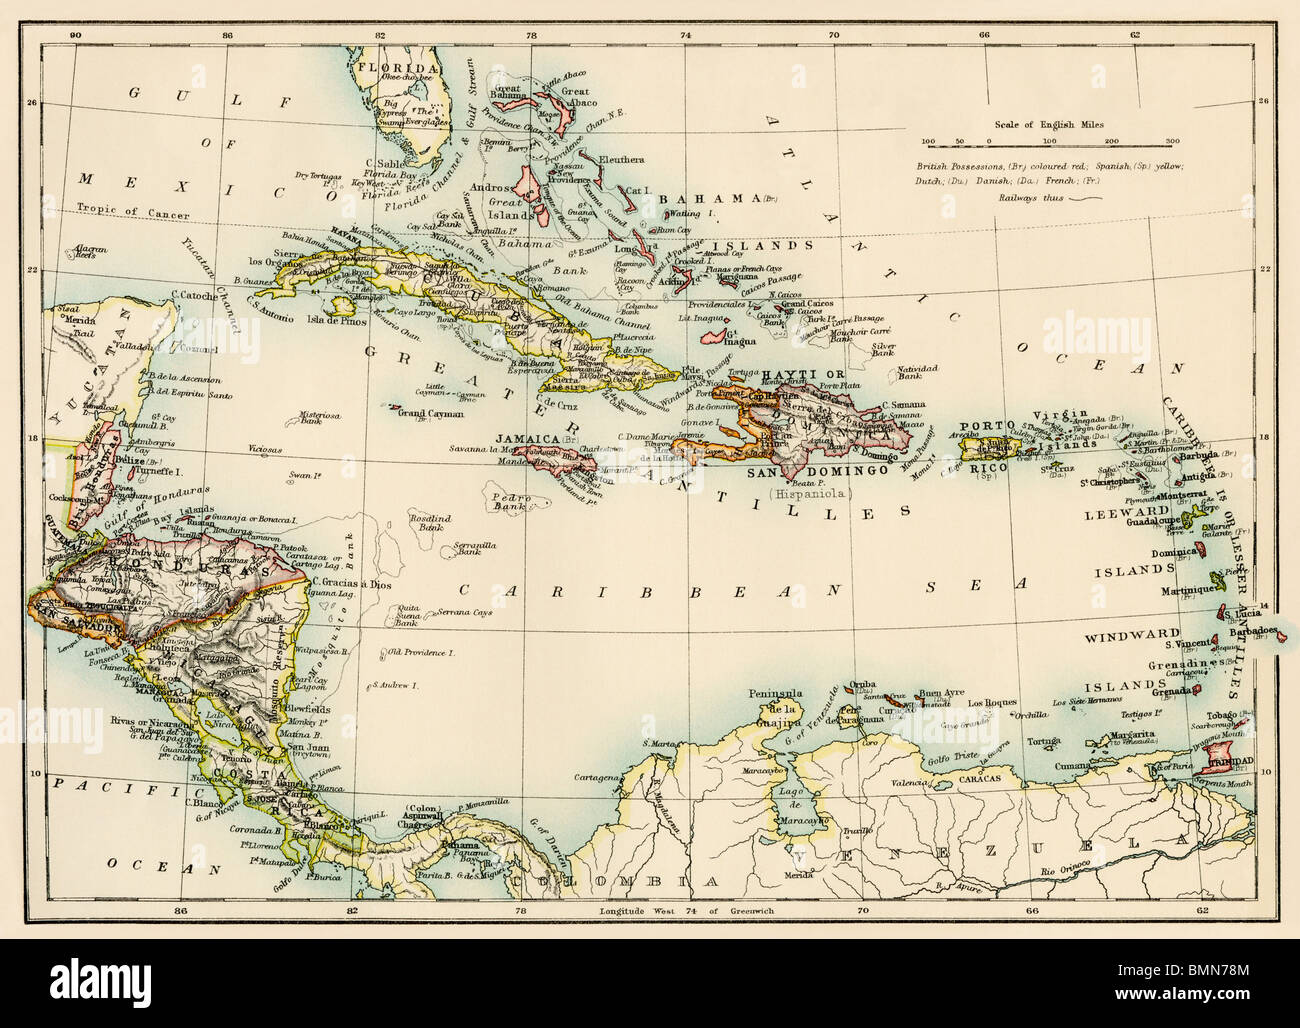 Map of the West Indies and the Caribbean Sea, 1800s. Color ...